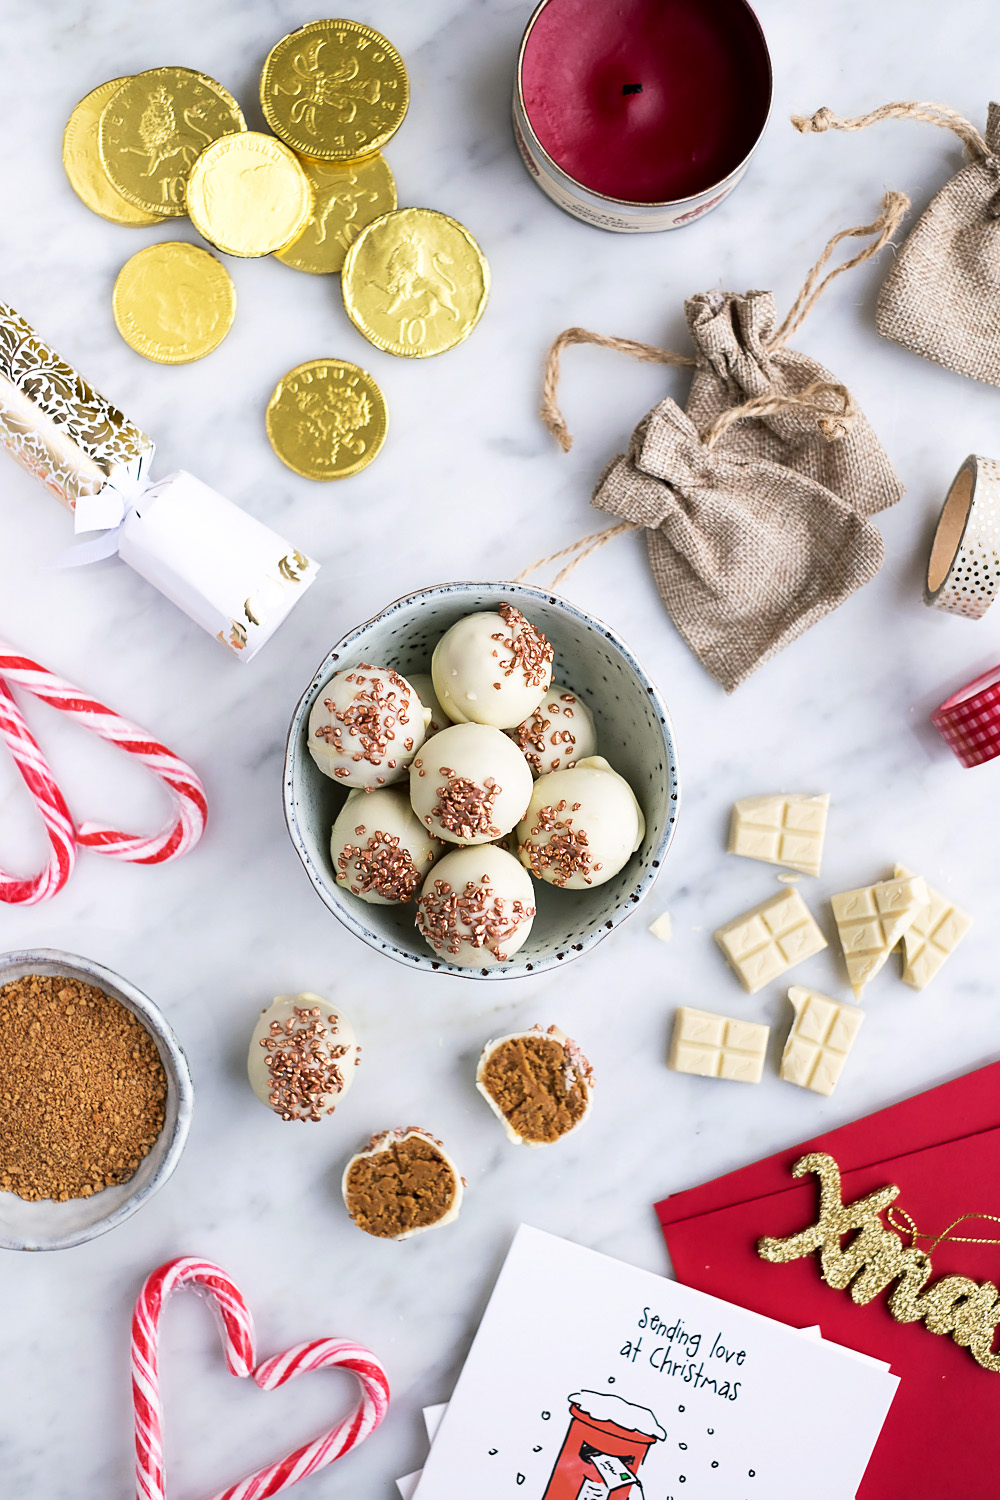 Speculoos and White Chocolate Truffles Recipe - Perfect for Christmas! (photography by Mondomulia)